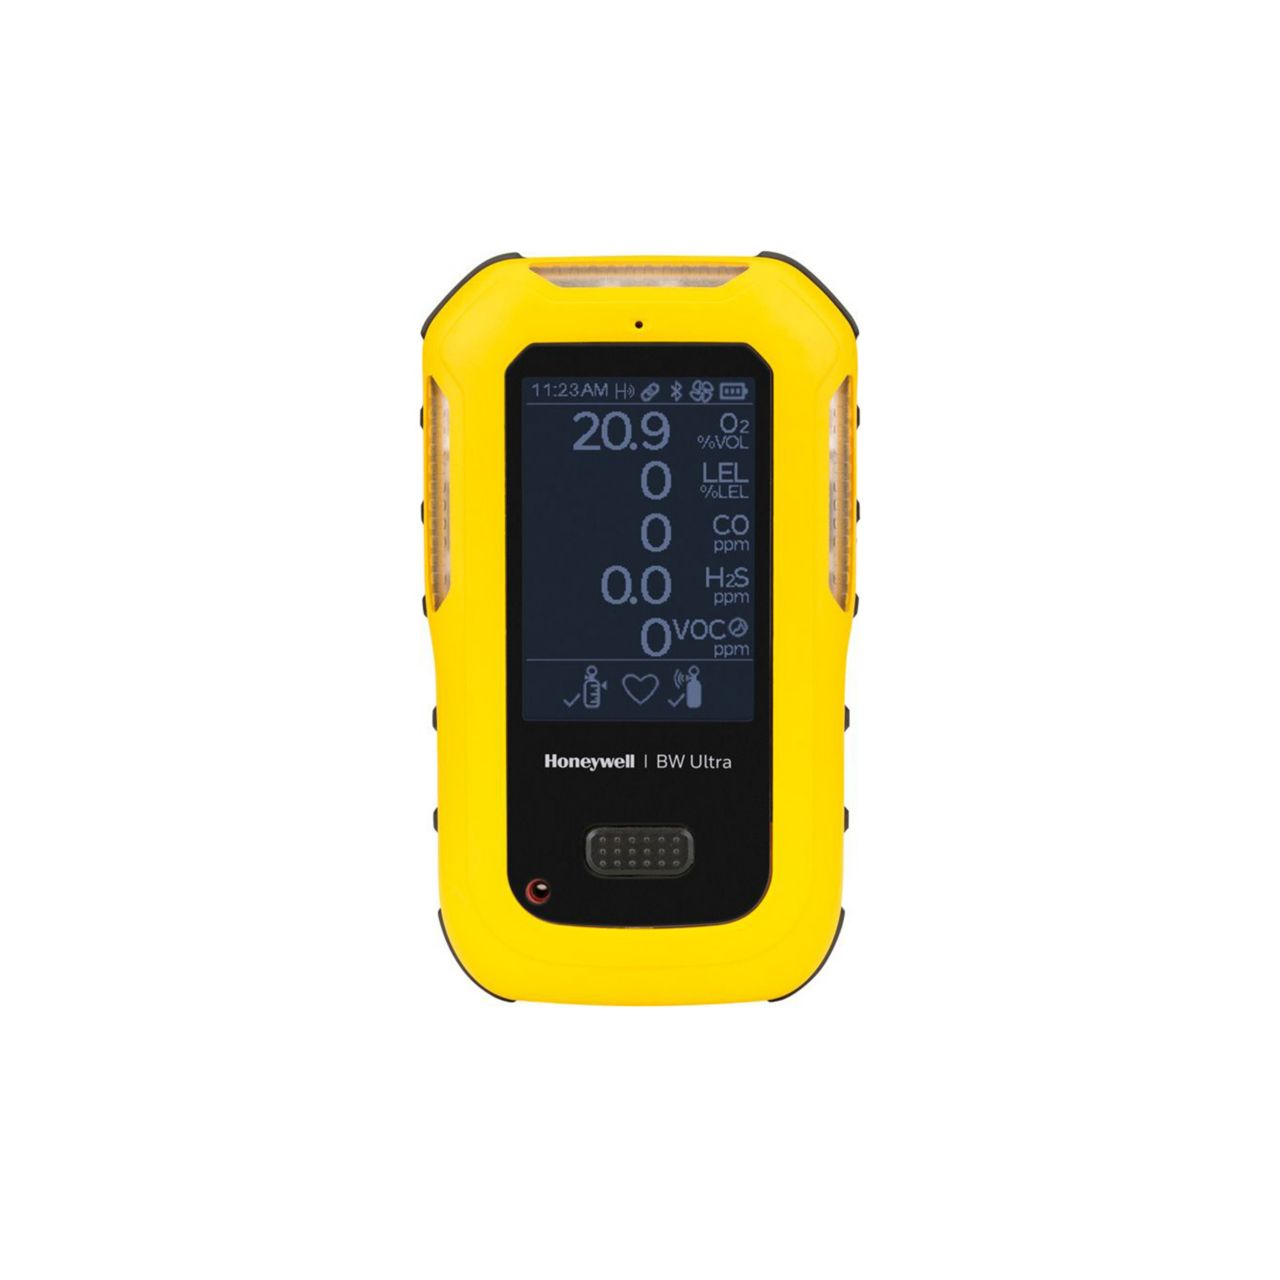 Honeywell_BW_Ultra_Yellow_Square